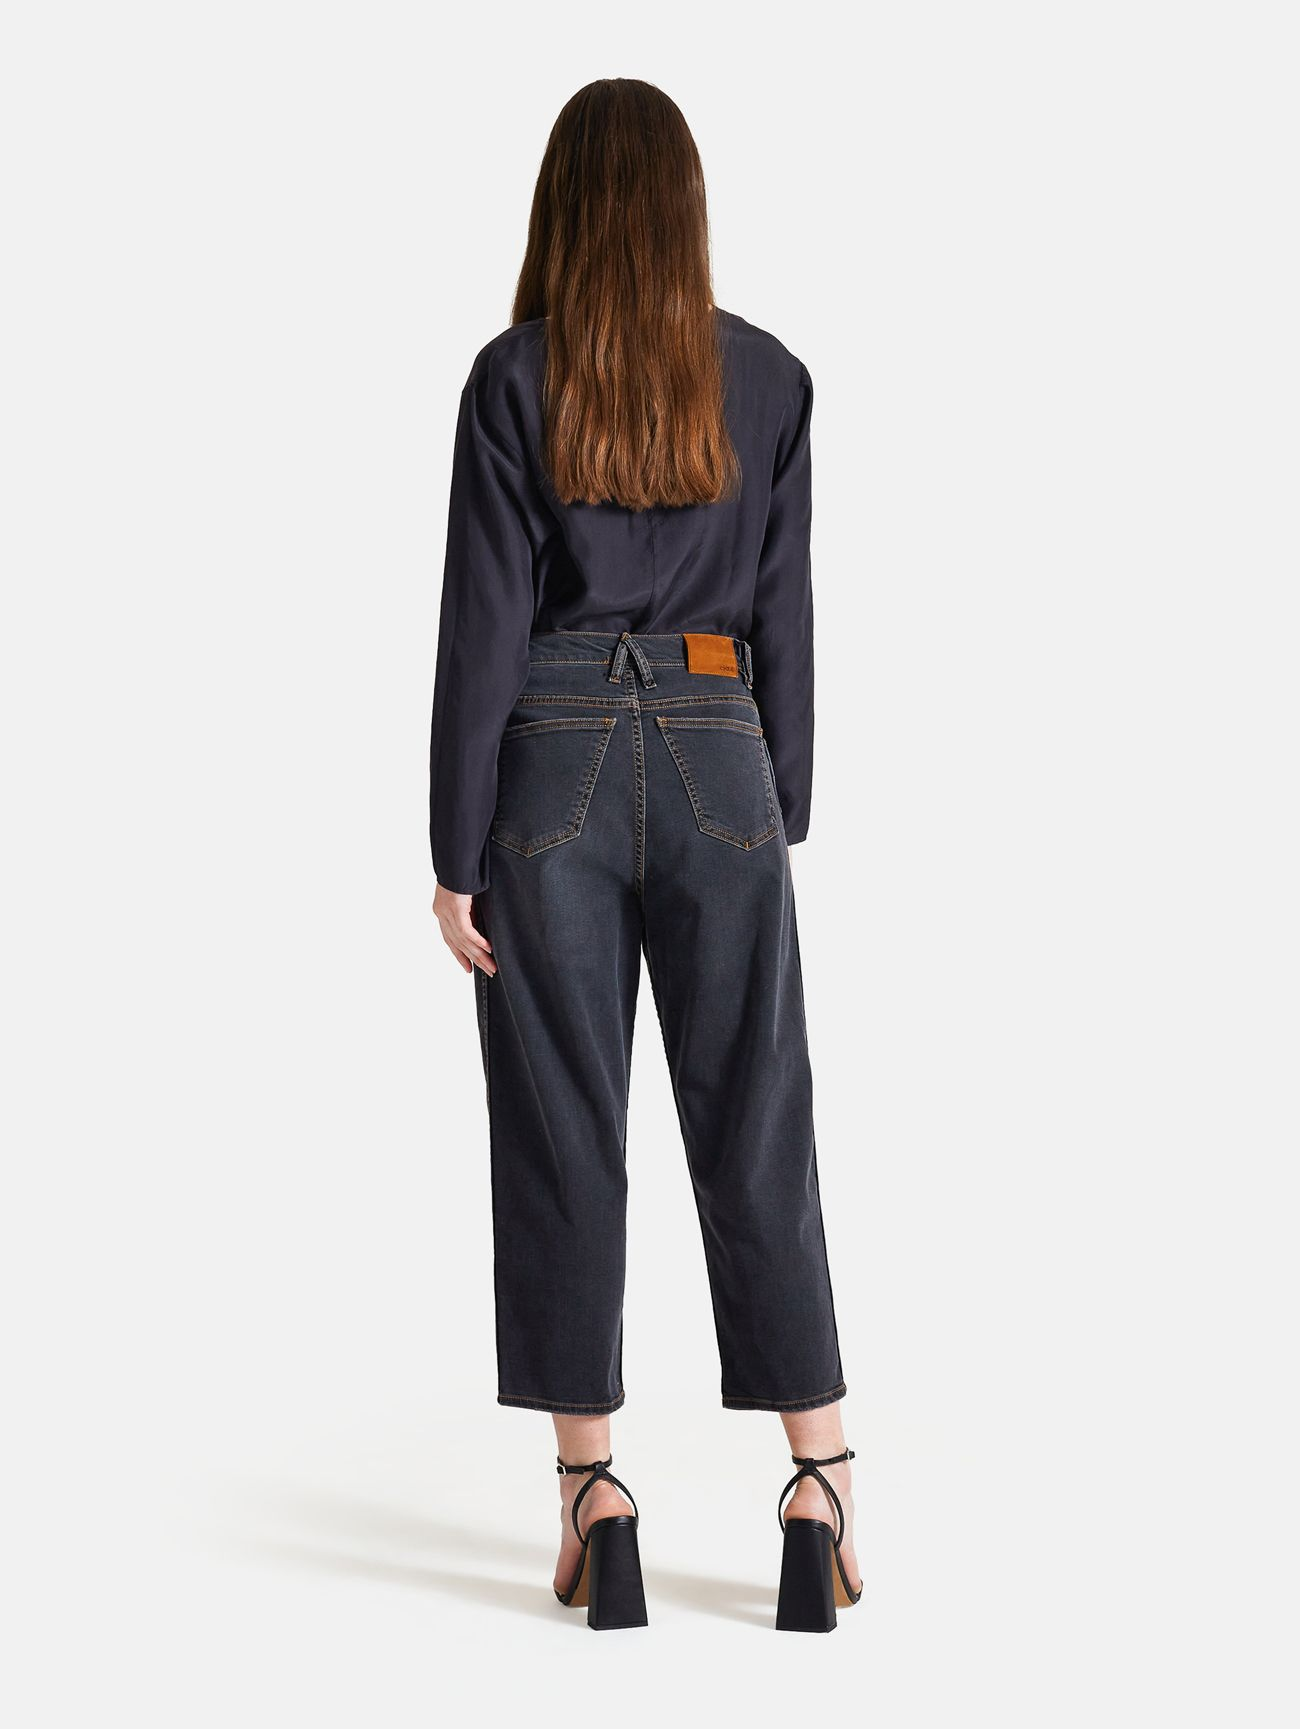 LOLA CARROT ANKLE BLACK STONE WASH NERO